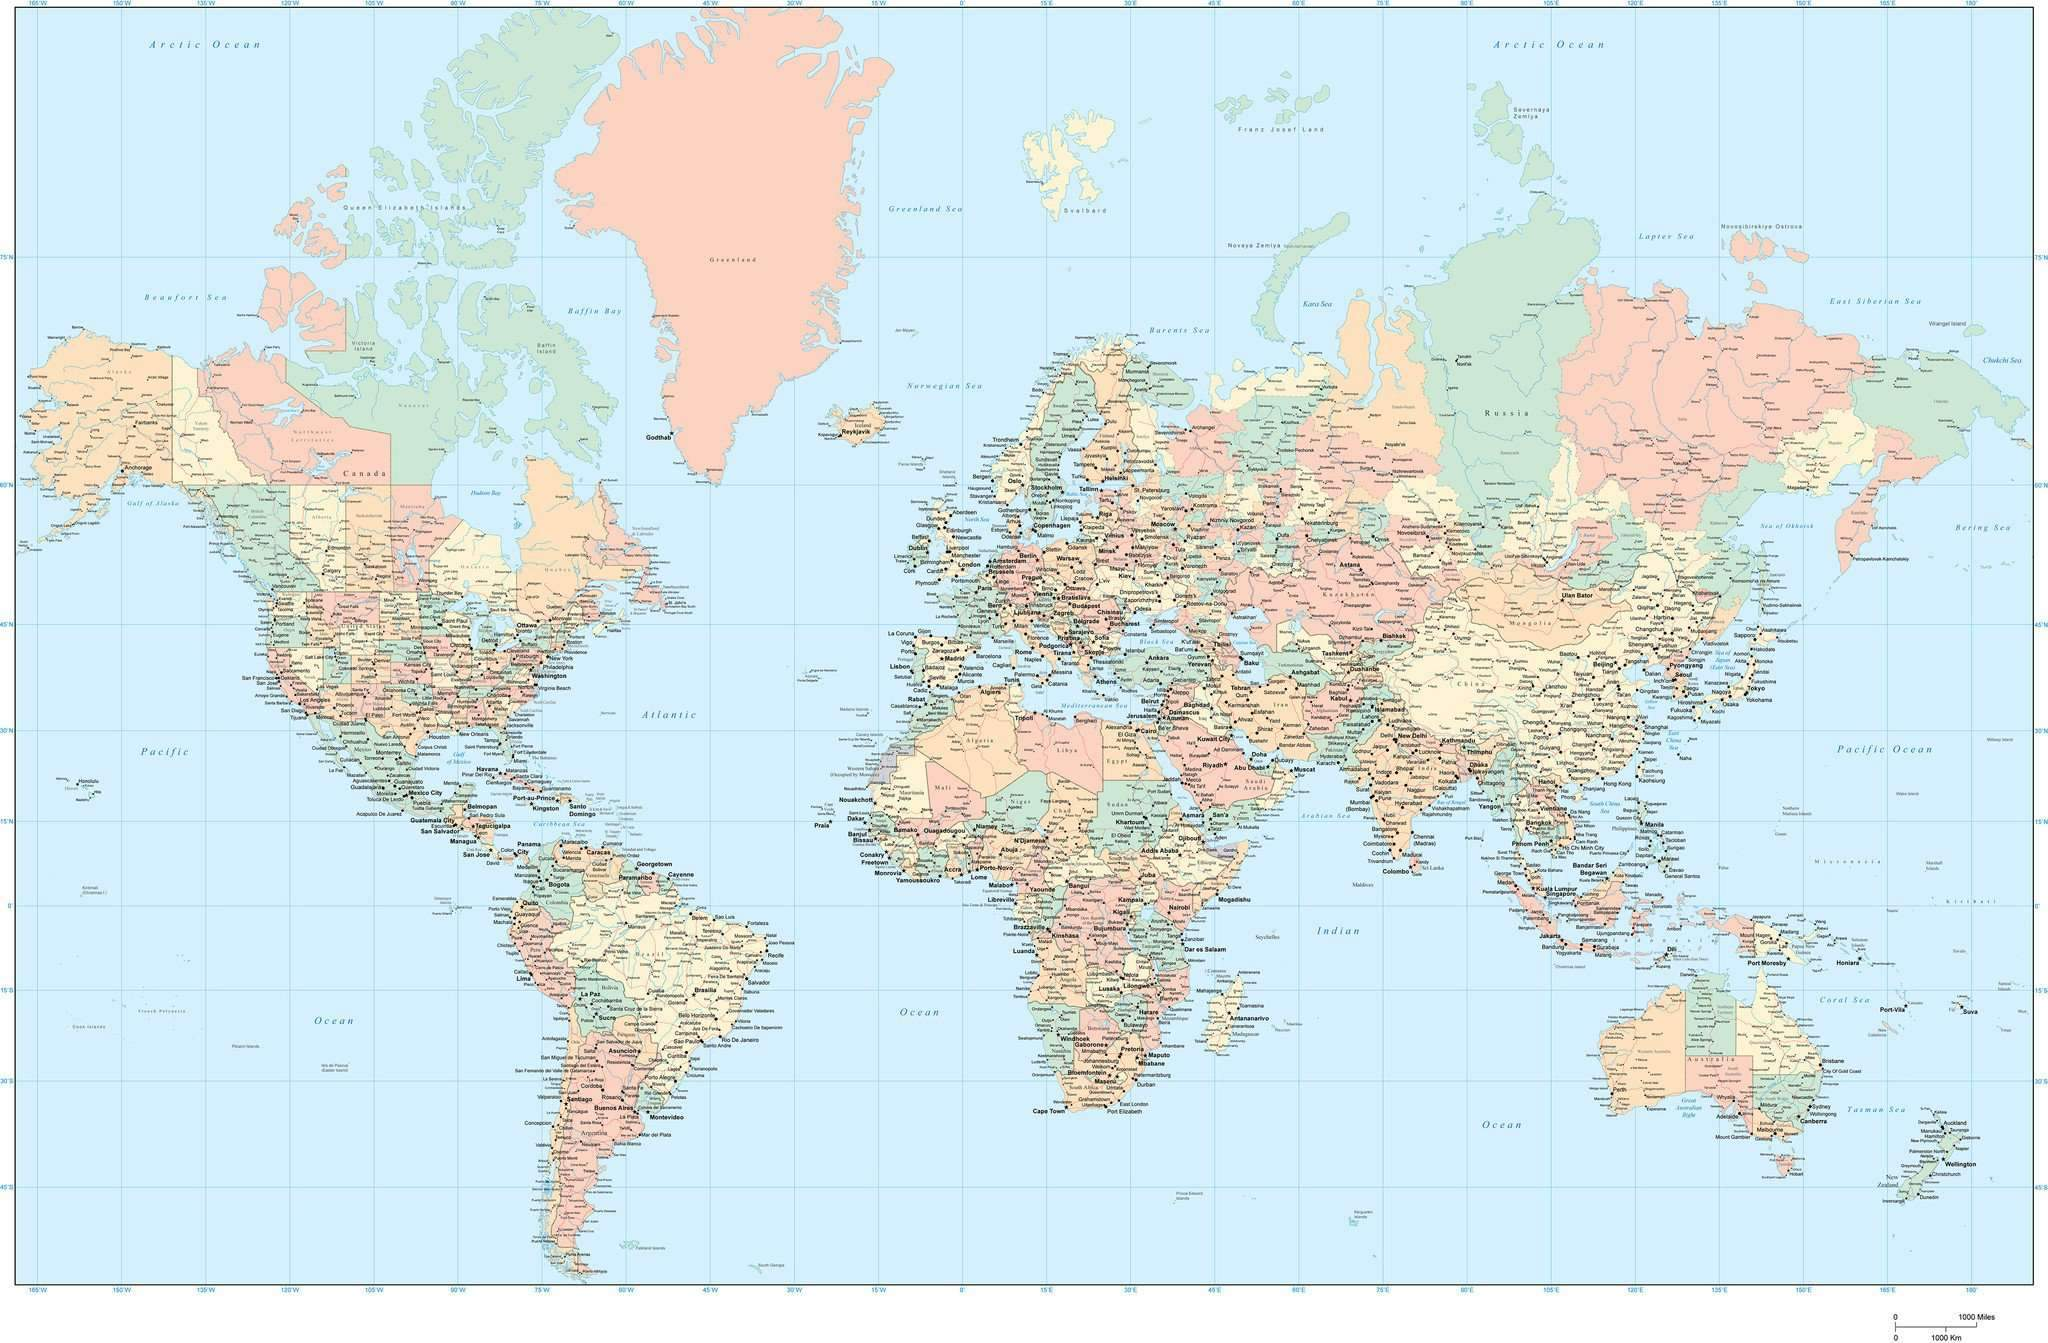 Scratch Off World Map With Us States.United States Watercolor Scratch Map At Getdrawings Com Free For